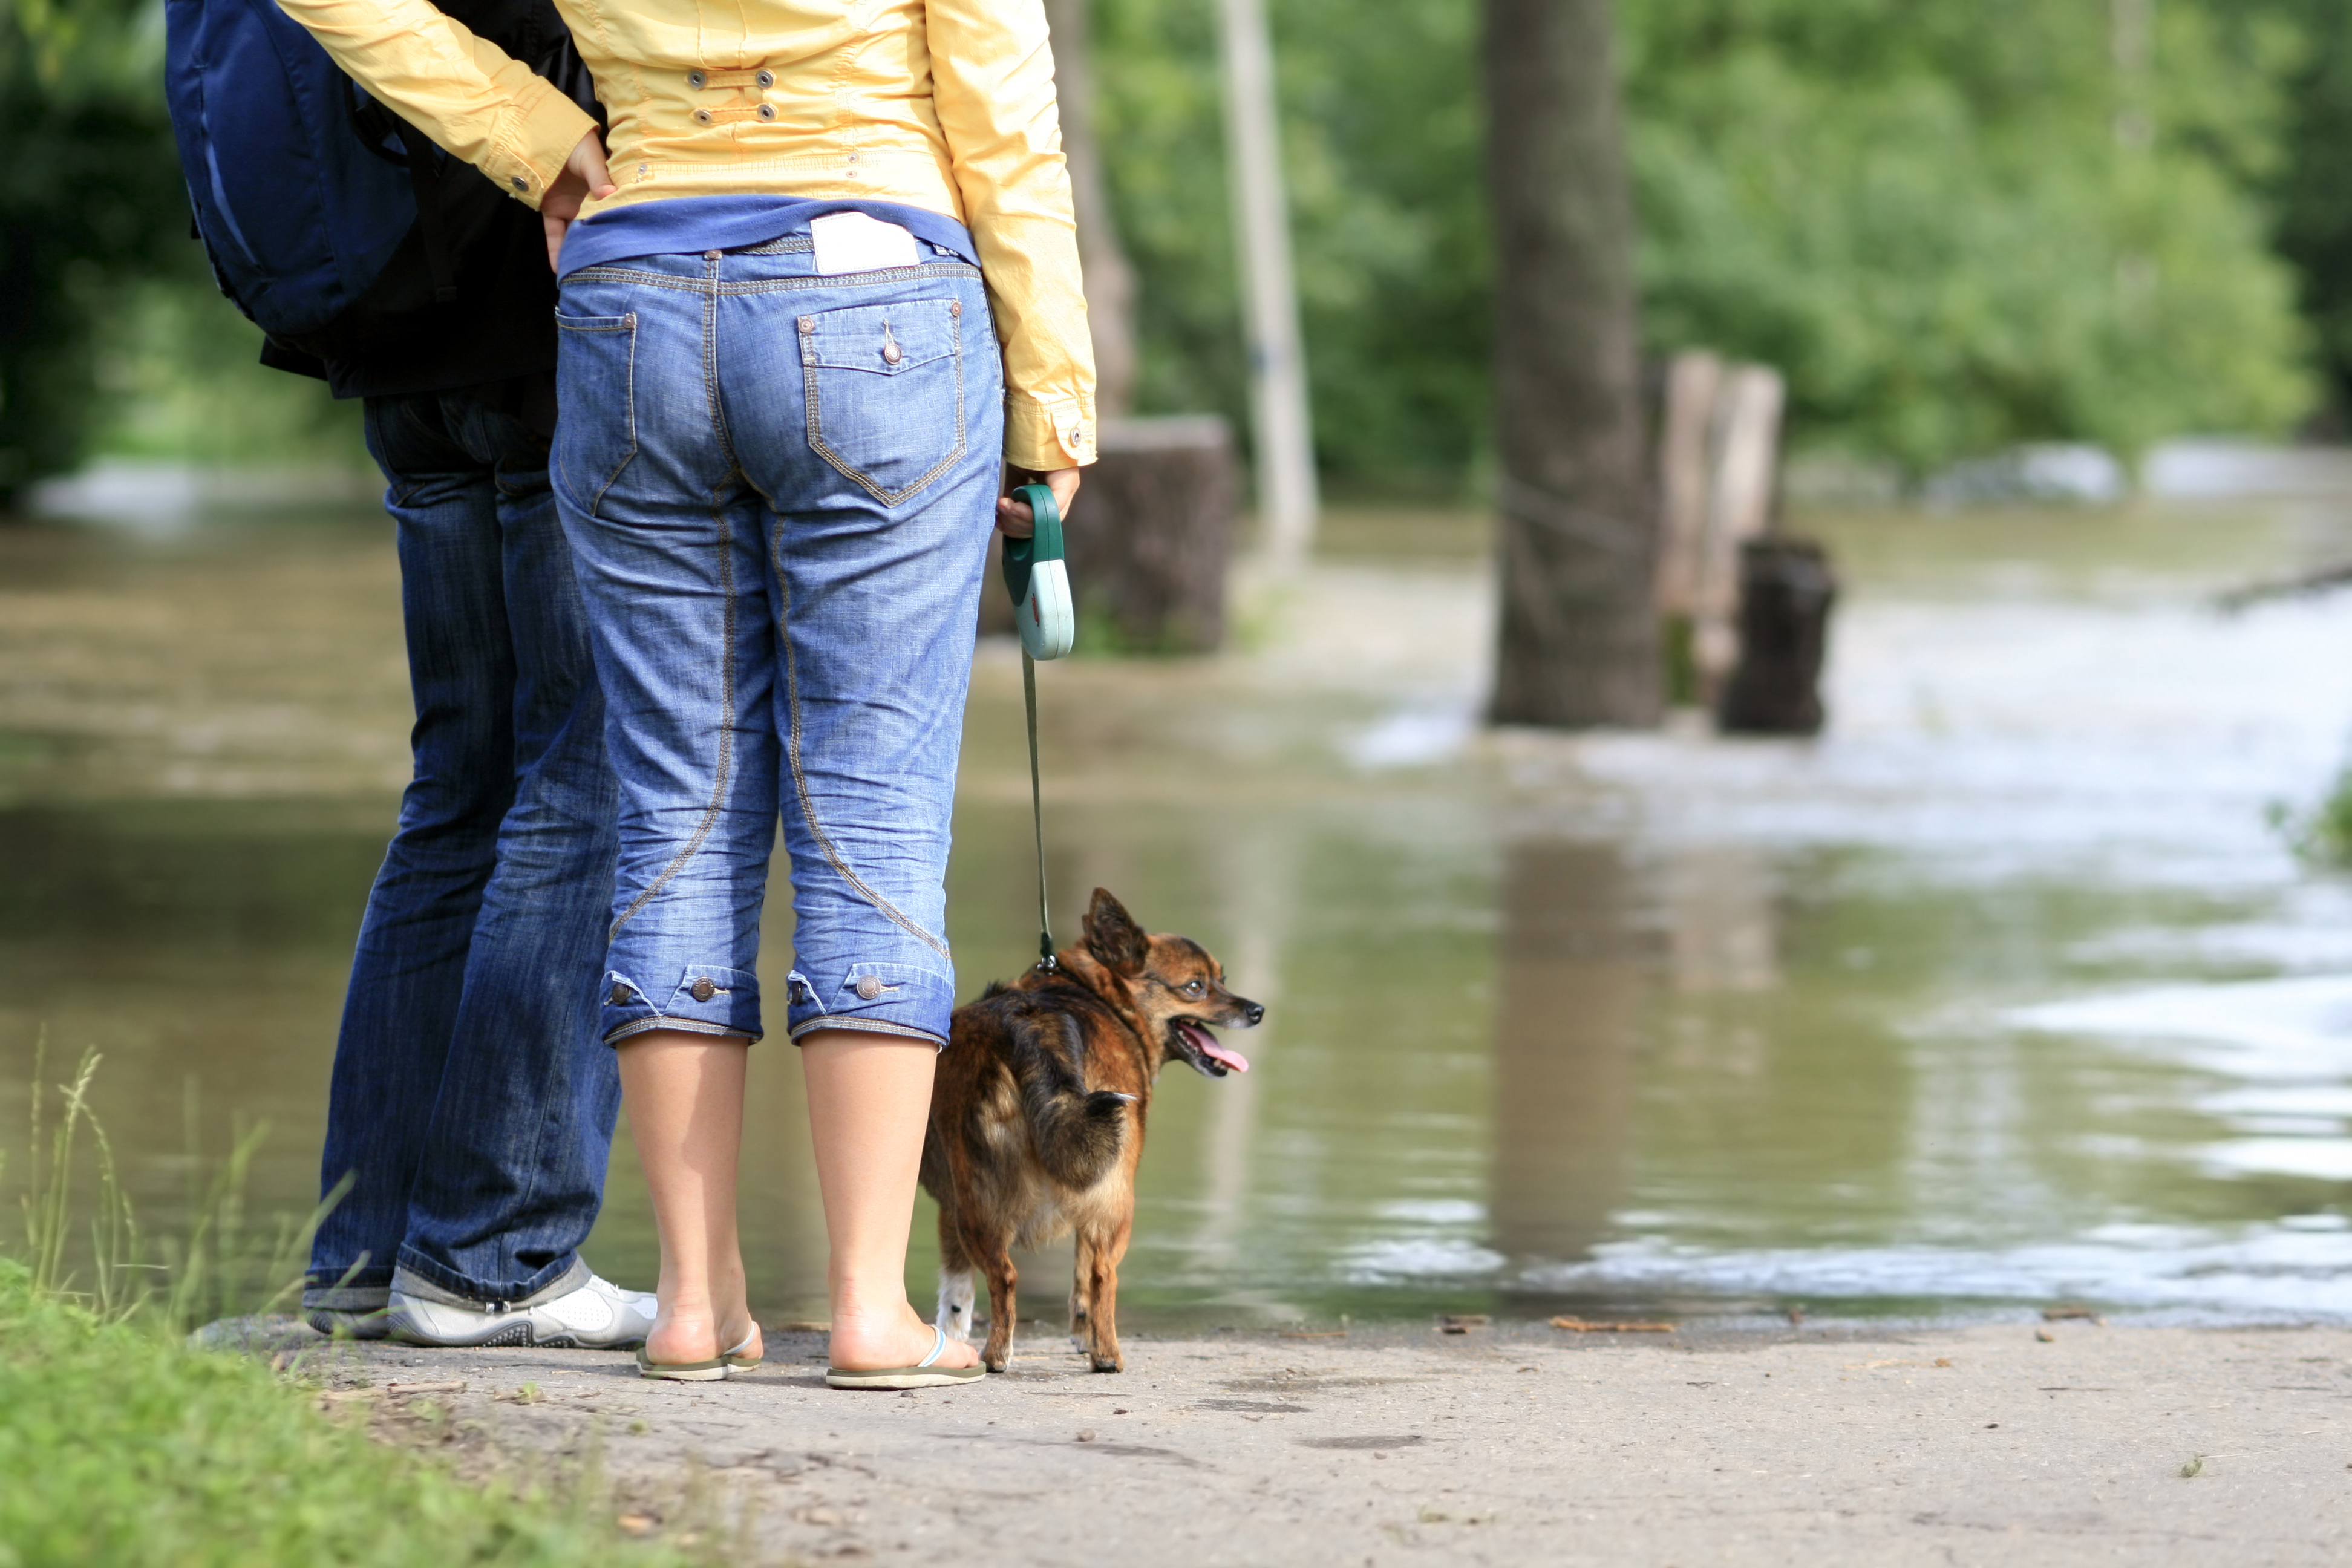 Purina aids people, pets impacted by flooding